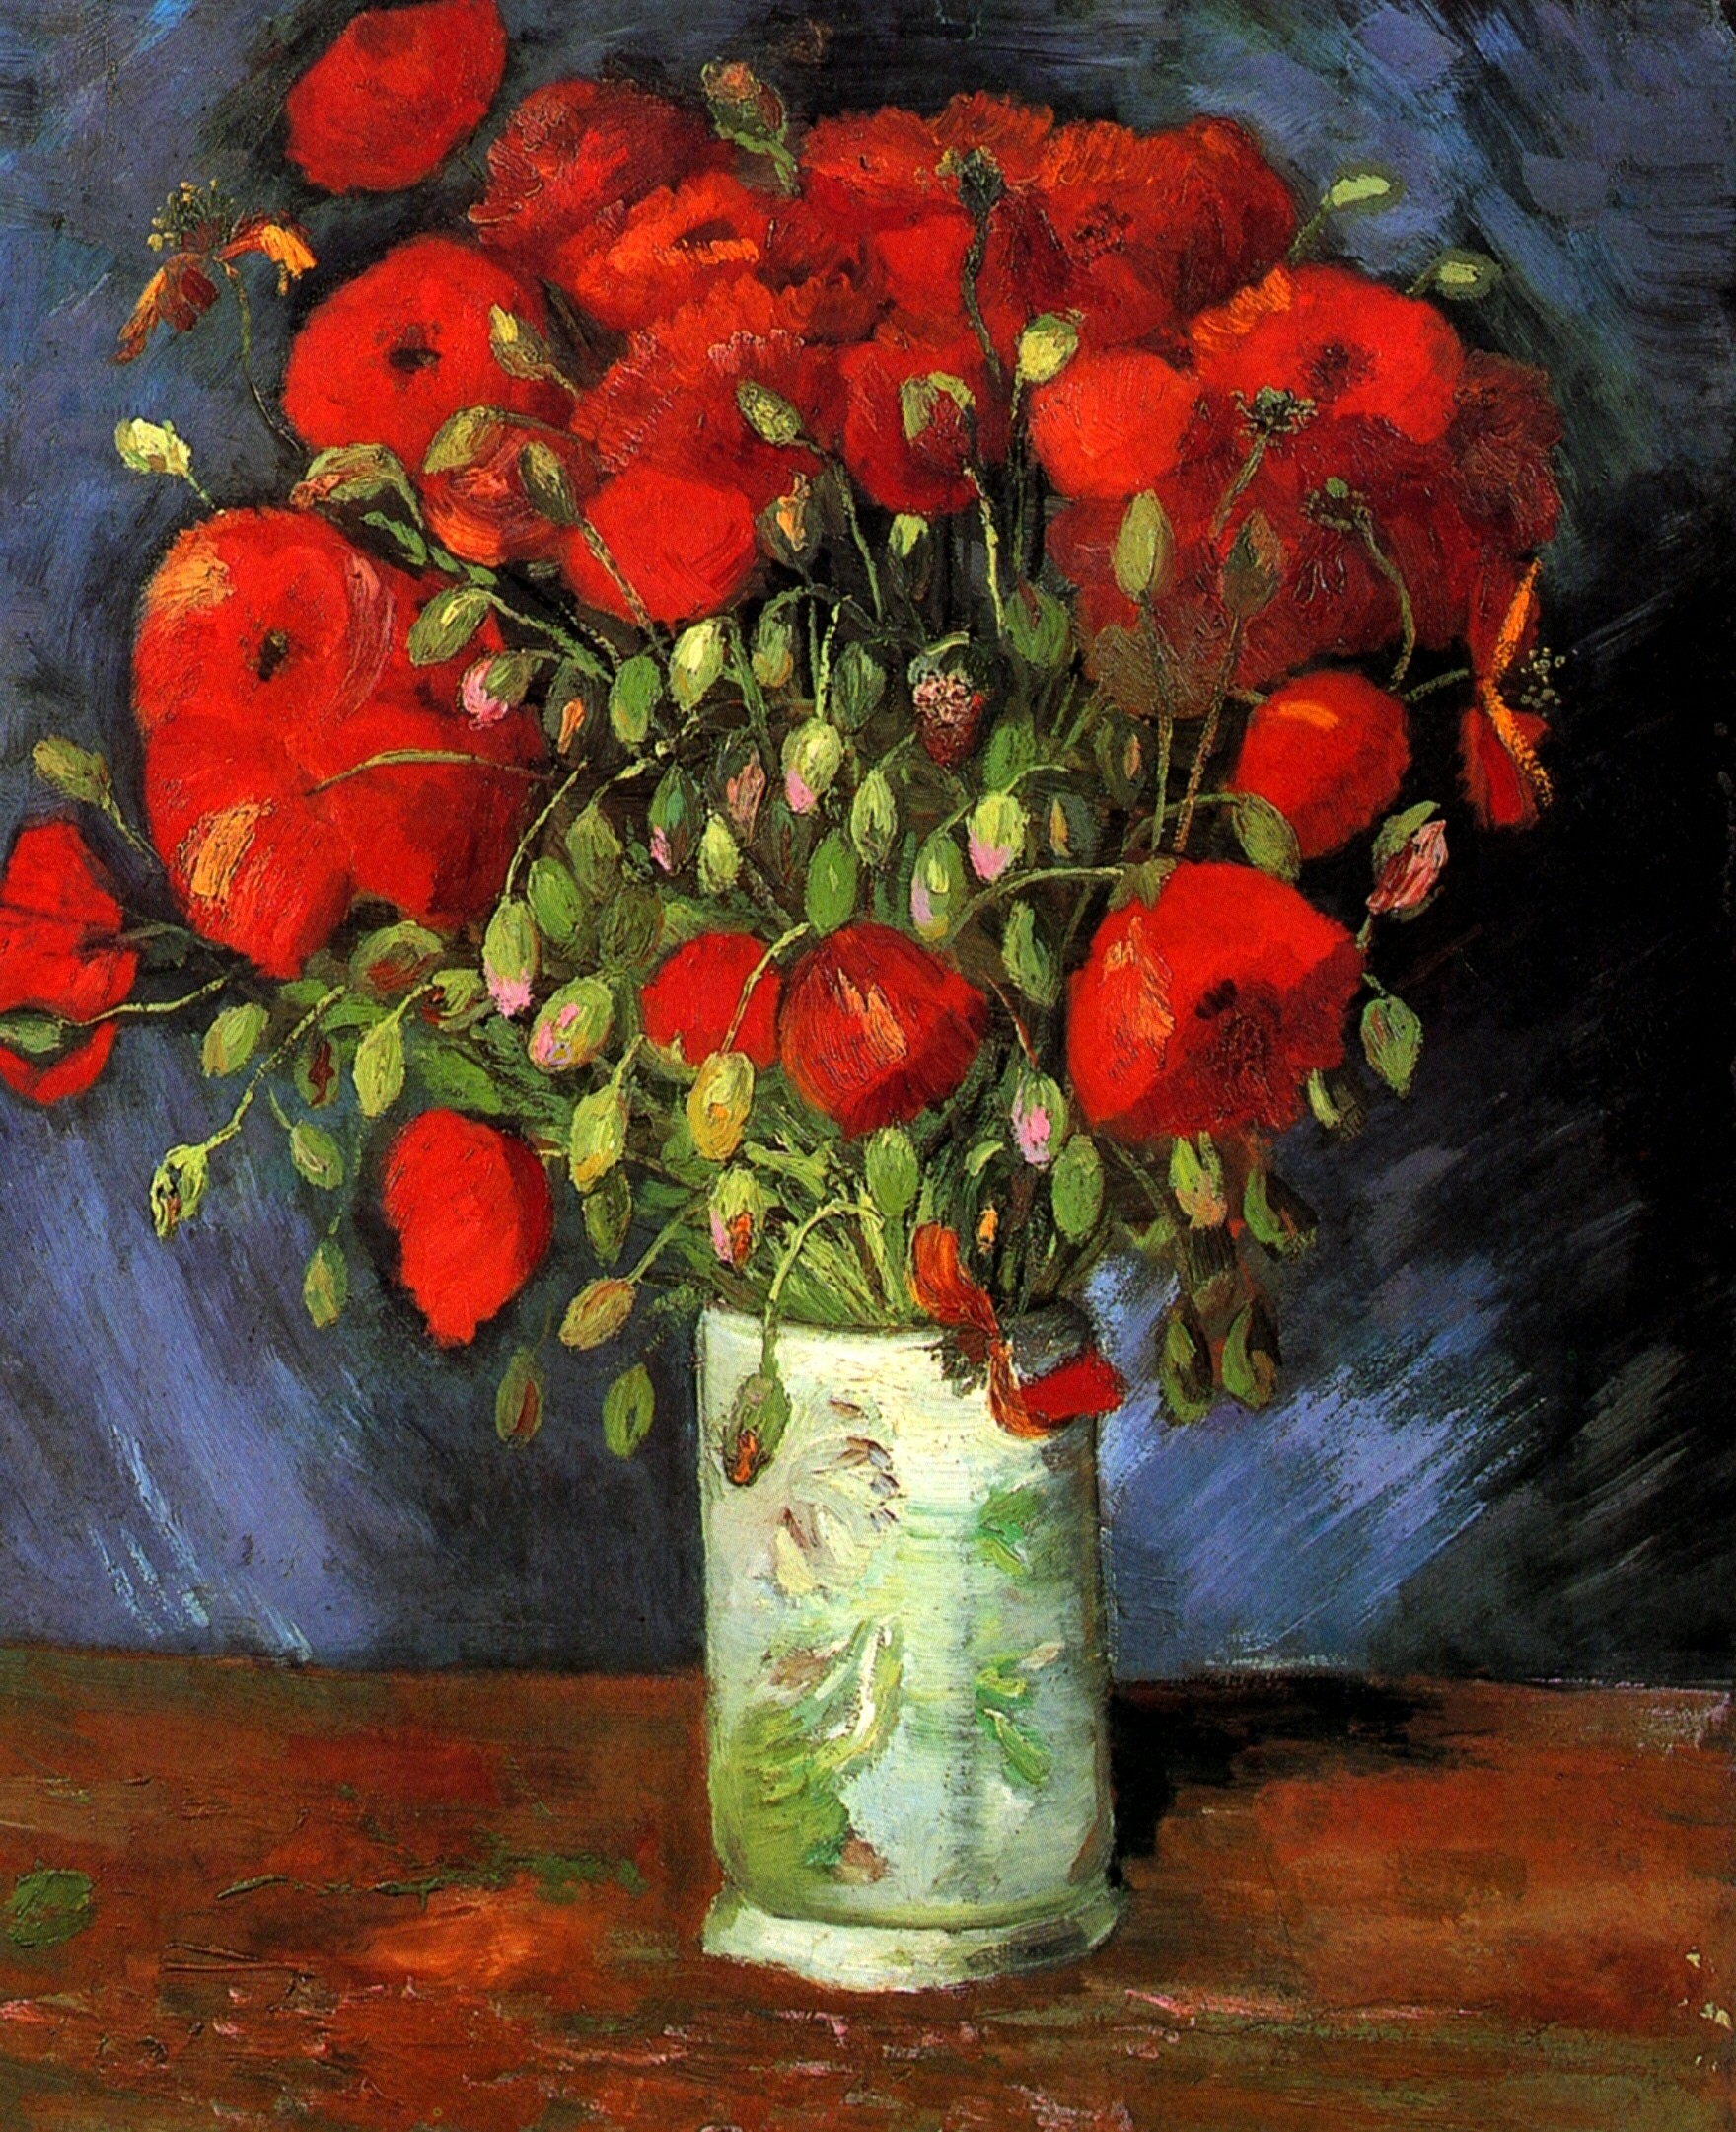 Vase with red poppies by vincent van gogh 1886 ciel bleu media vase with red poppies by vincent van gogh 1886 reviewsmspy